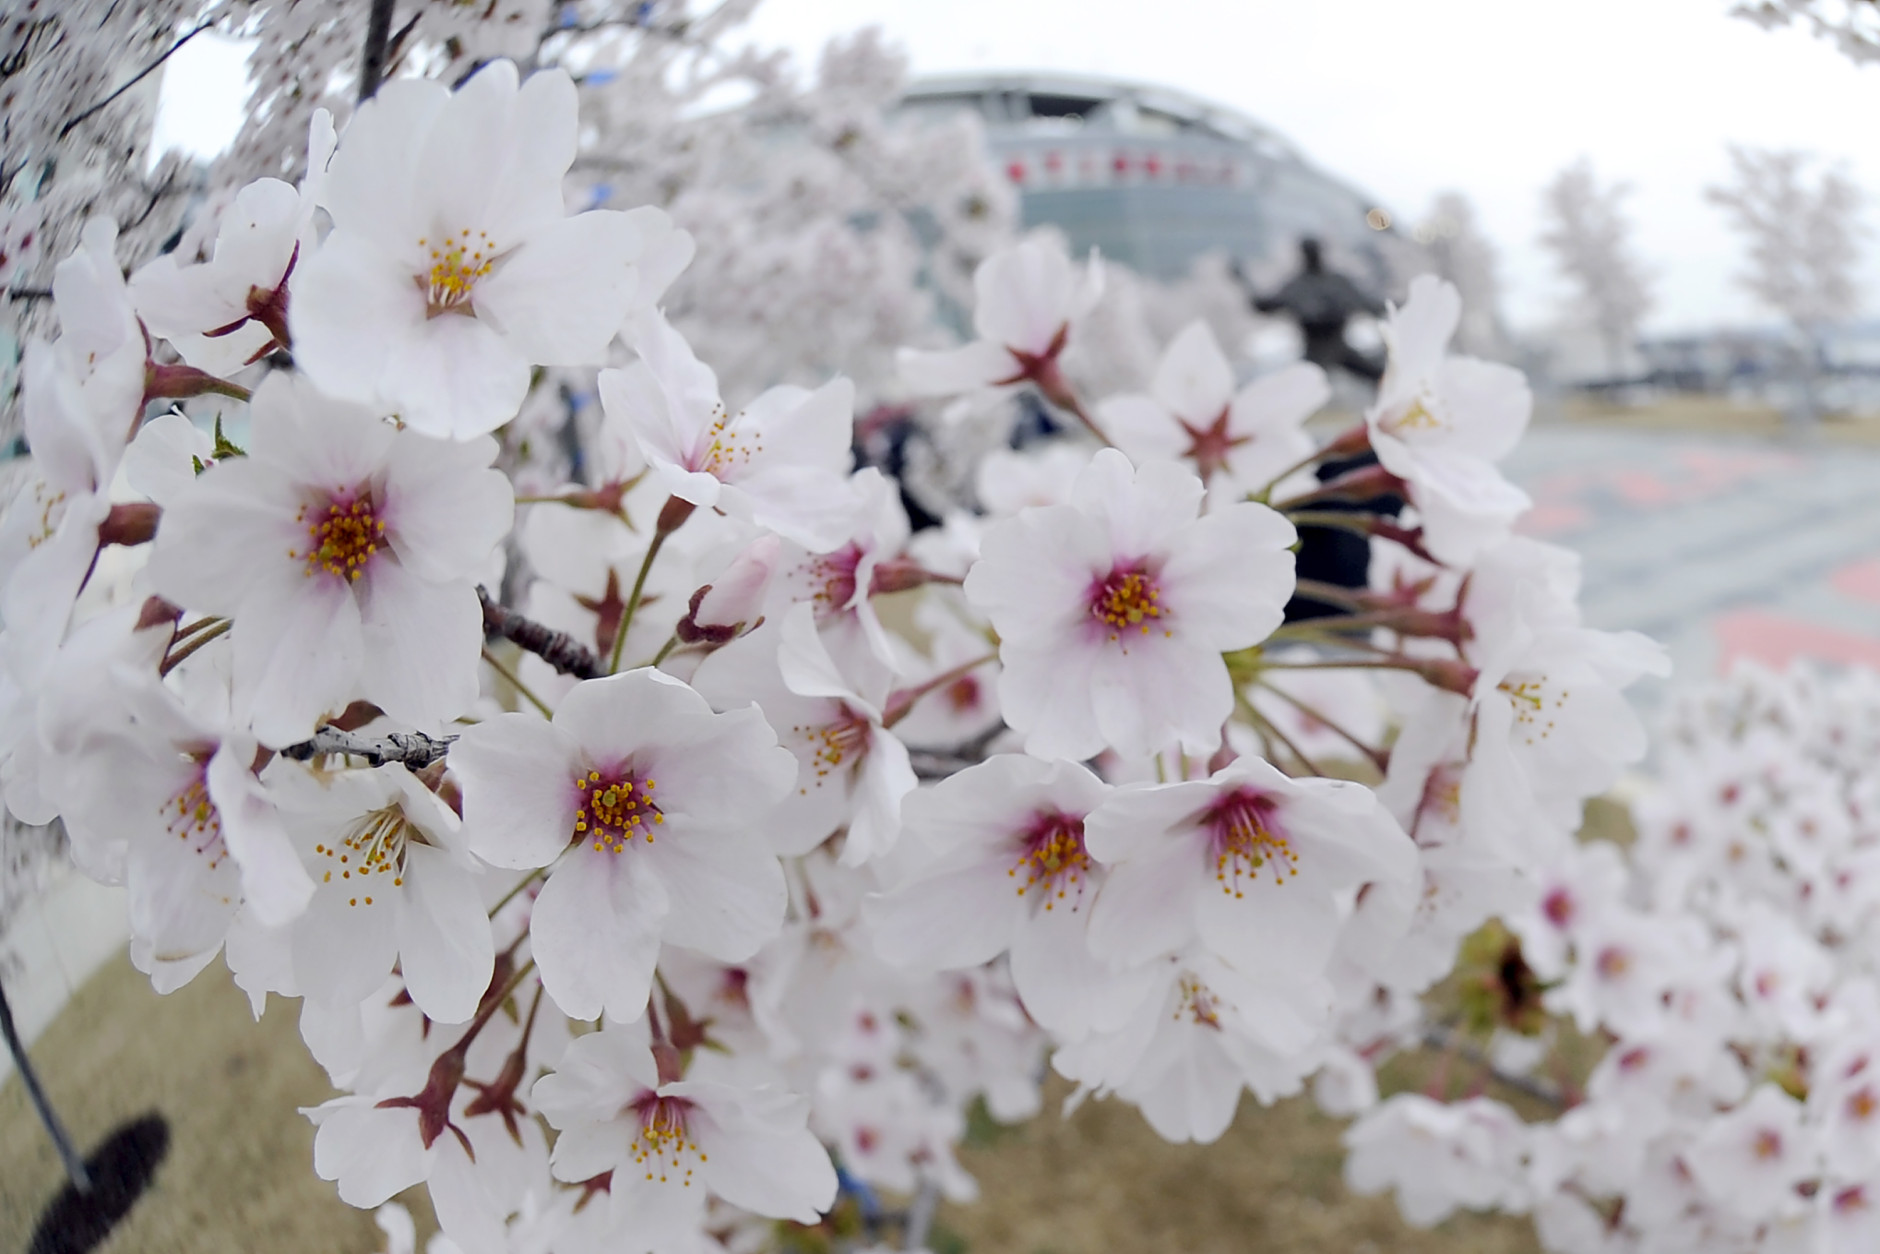 WASHINGTON, DC - APRIL 09:  Cherry blossoms bloom outside of Nationals Park before a baseball against between the Washington Nationals and the New York Mets on April 9, 2015 in Washington, DC.  (Photo by Mitchell Layton/Getty Images)